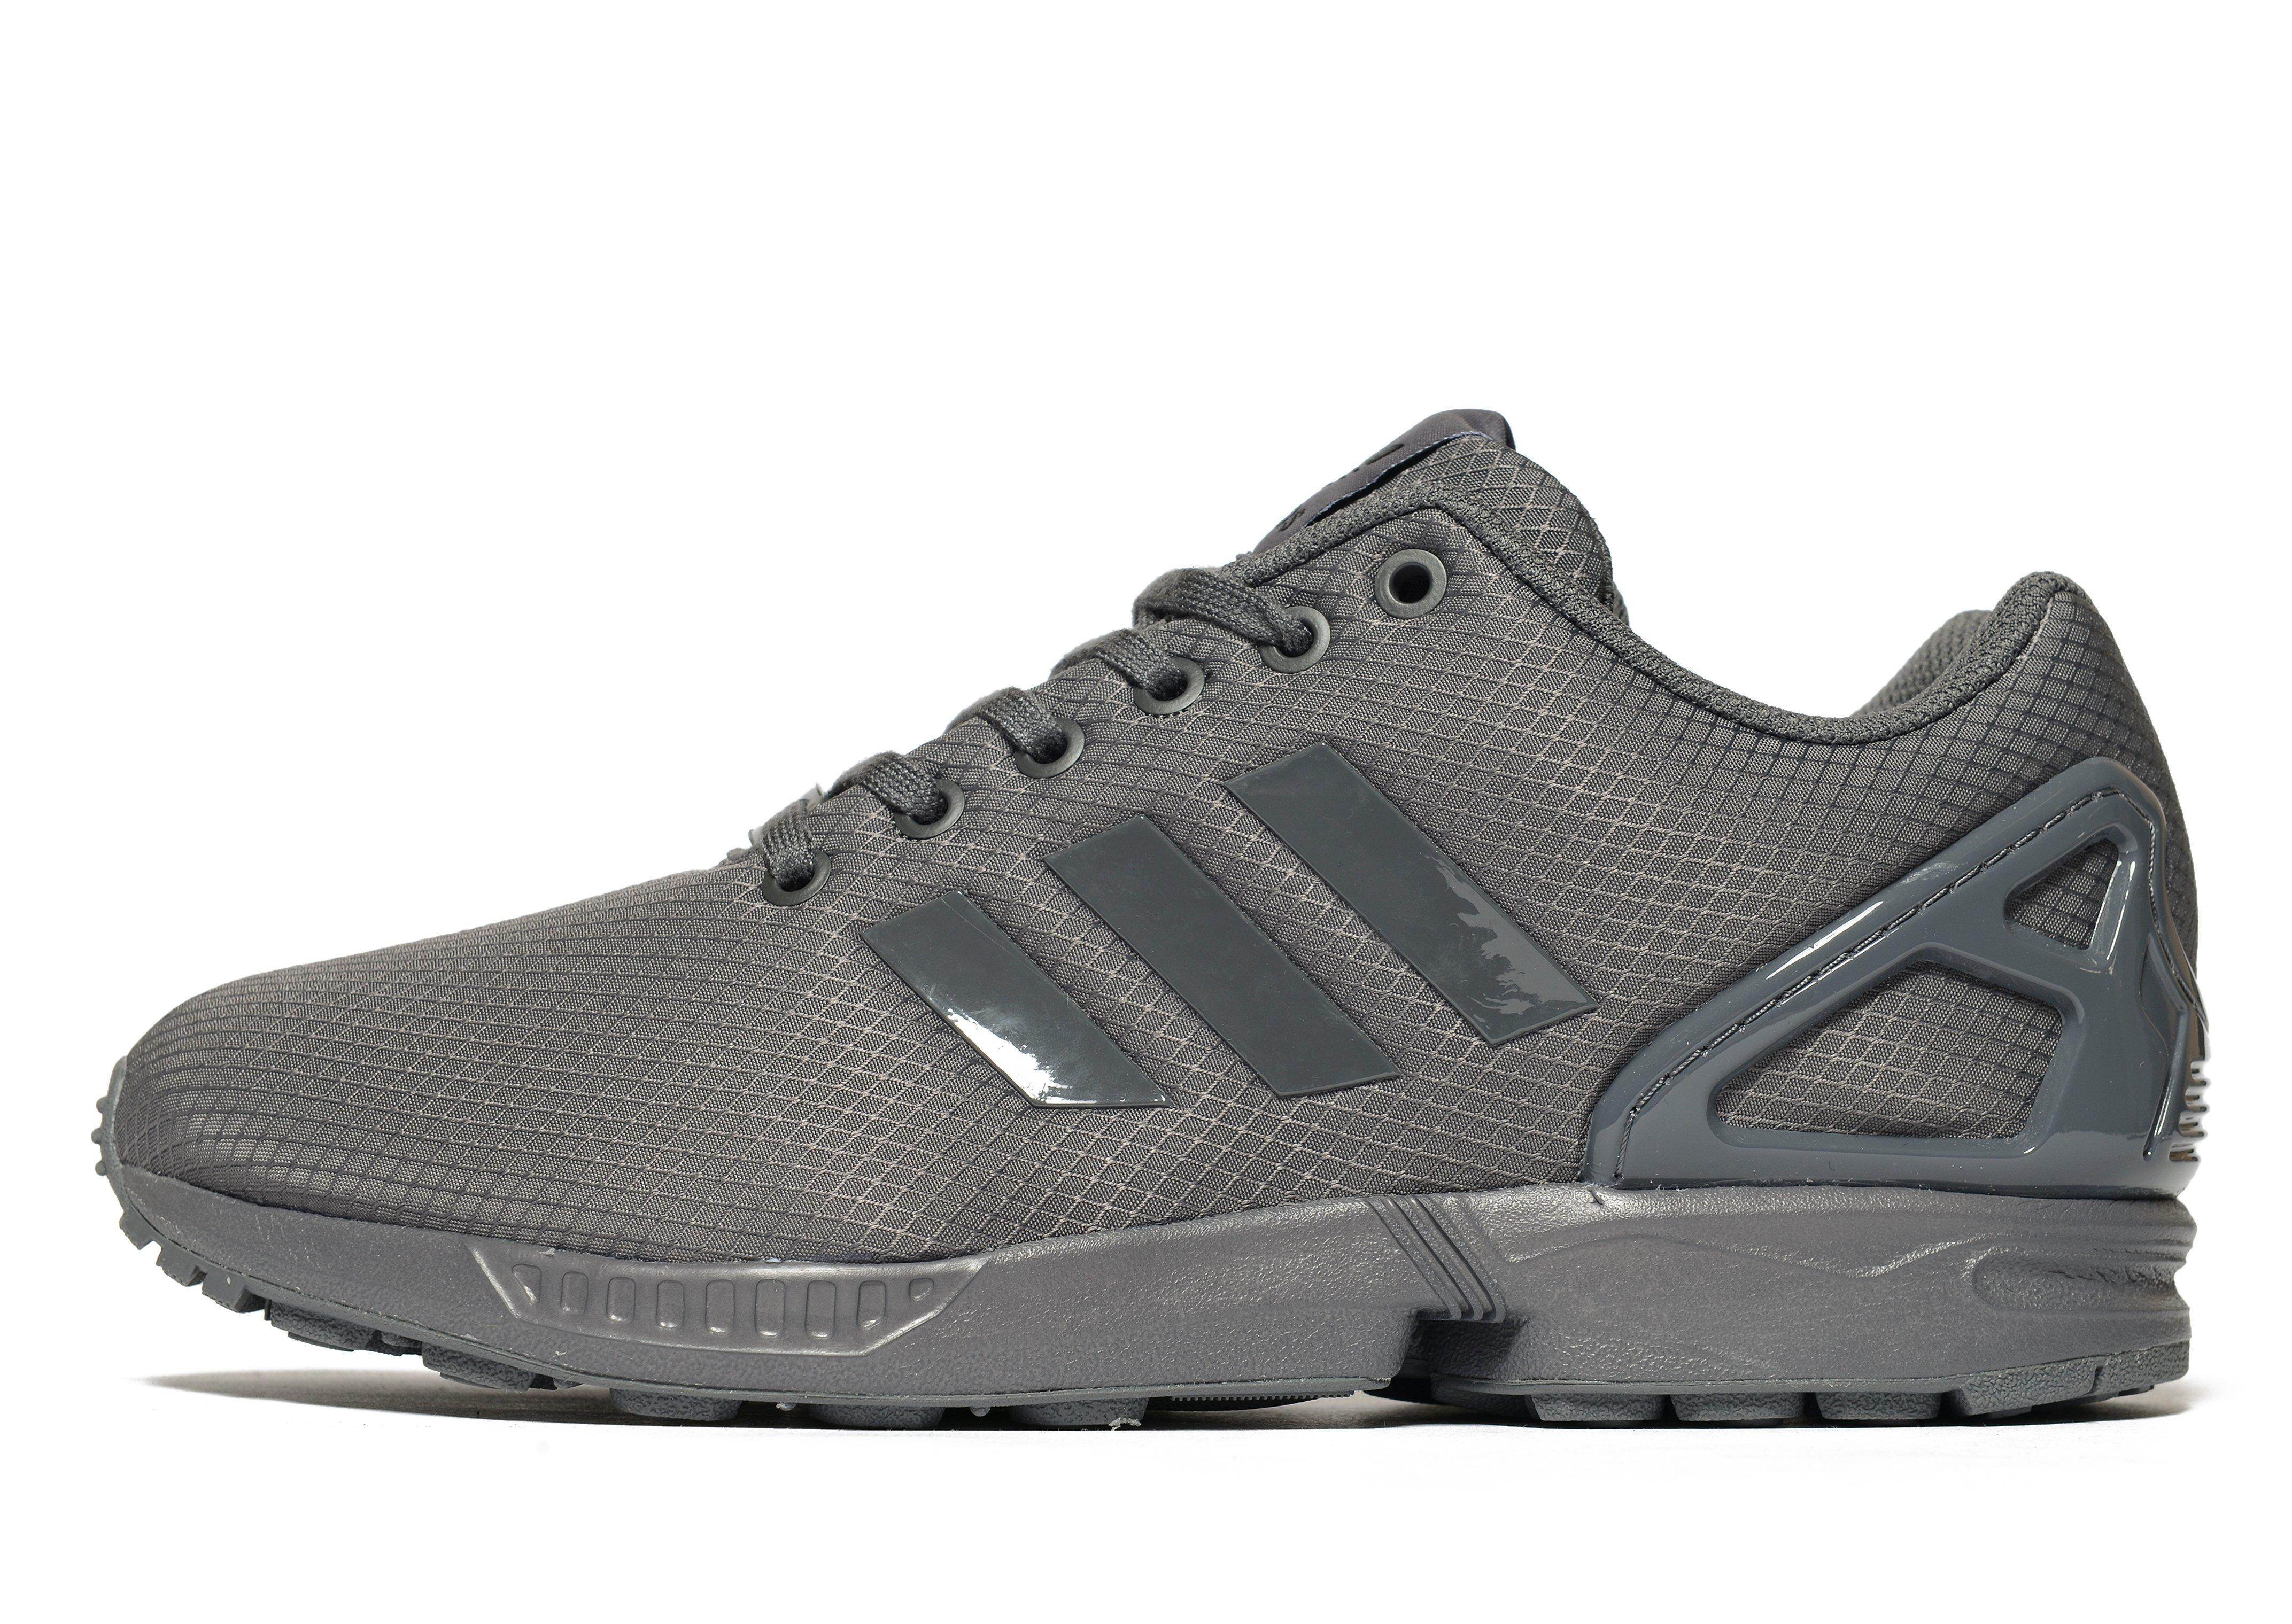 lyst adidas originals zx flux ripstop in gray for men. Black Bedroom Furniture Sets. Home Design Ideas